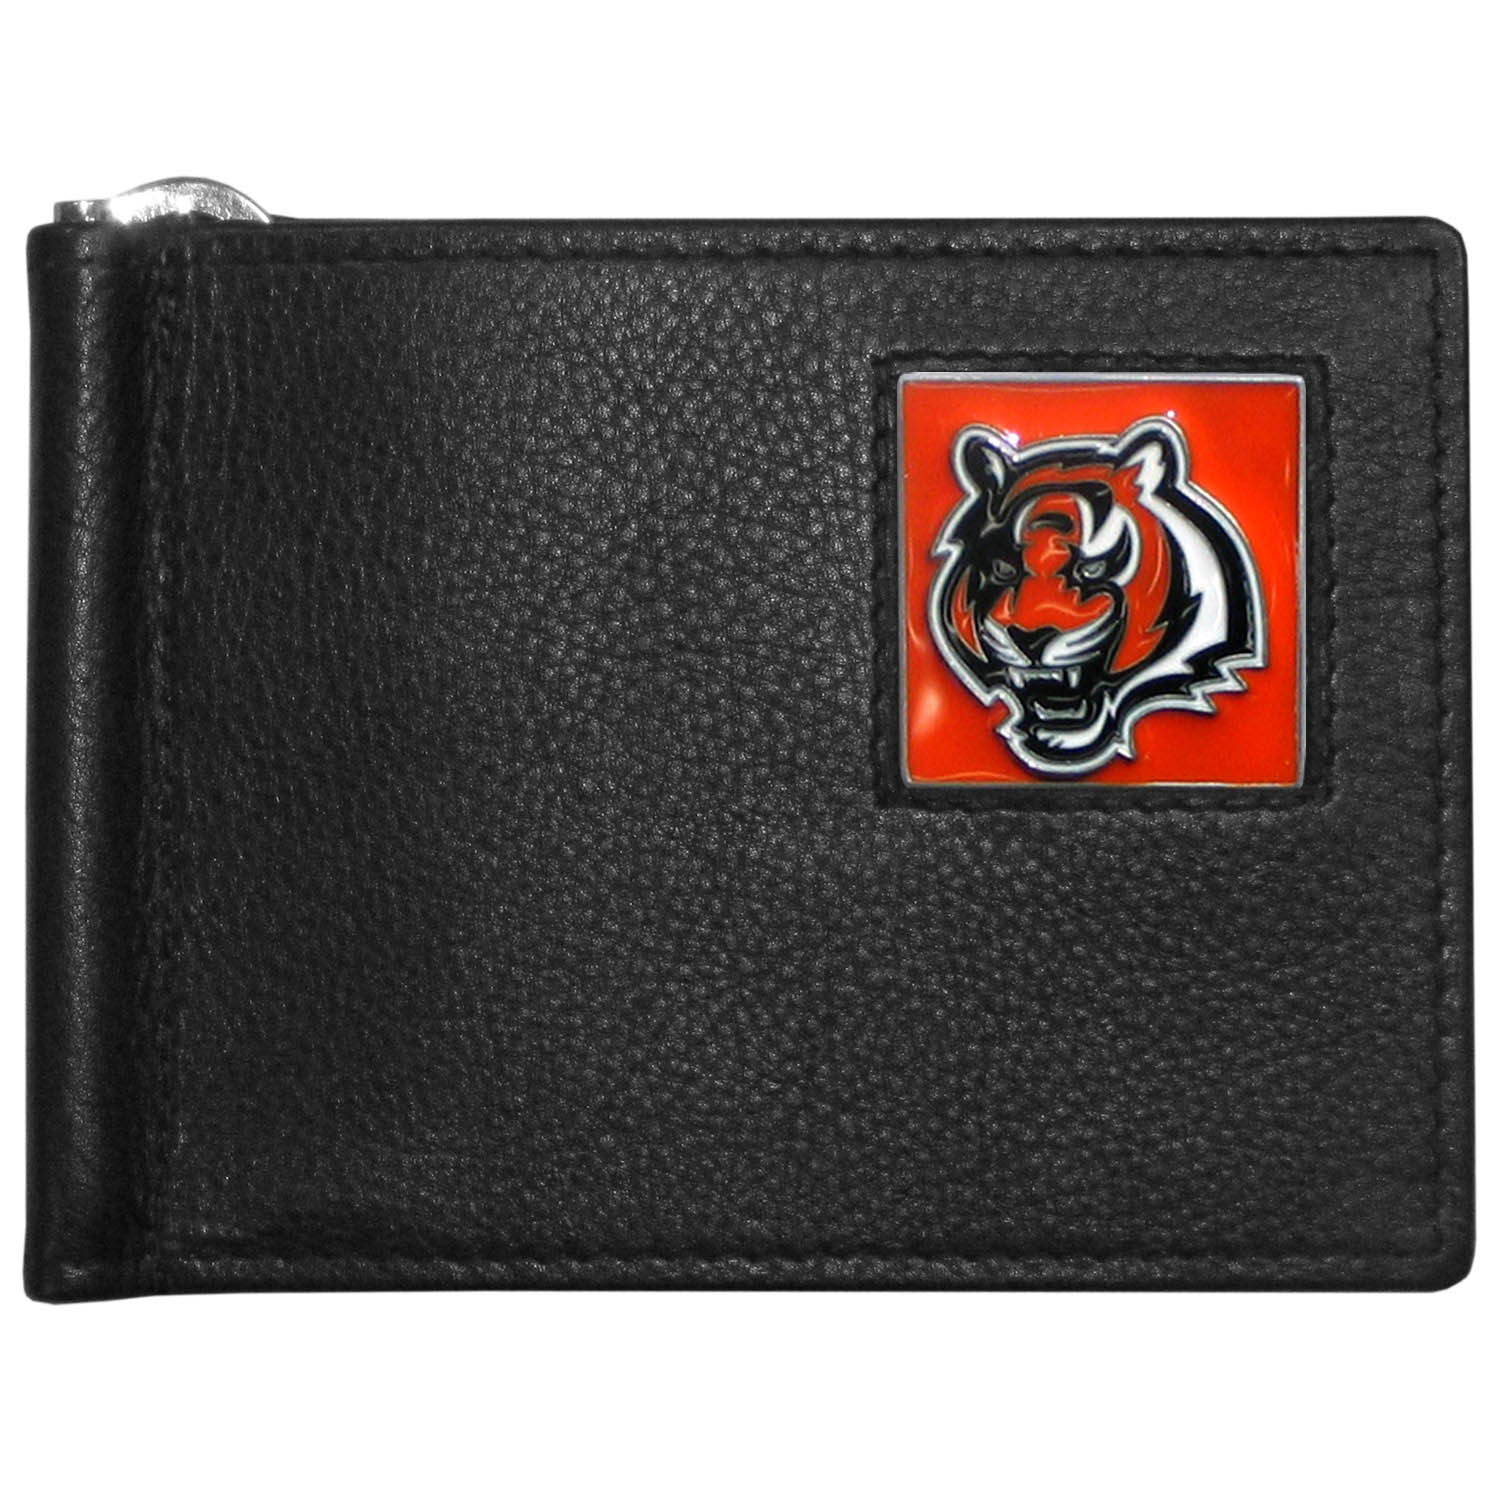 Cincinnati Bengals Leather Bill Clip Wallet - This cool new style wallet features an inner, metal bill clip that lips up for easy access. The super slim wallet holds tons of stuff with ample pockets, credit card slots & windowed ID slot.  The wallet is made of genuine fine grain leather and it finished with a metal Cincinnati Bengals emblem. The wallet is shipped in gift box packaging.